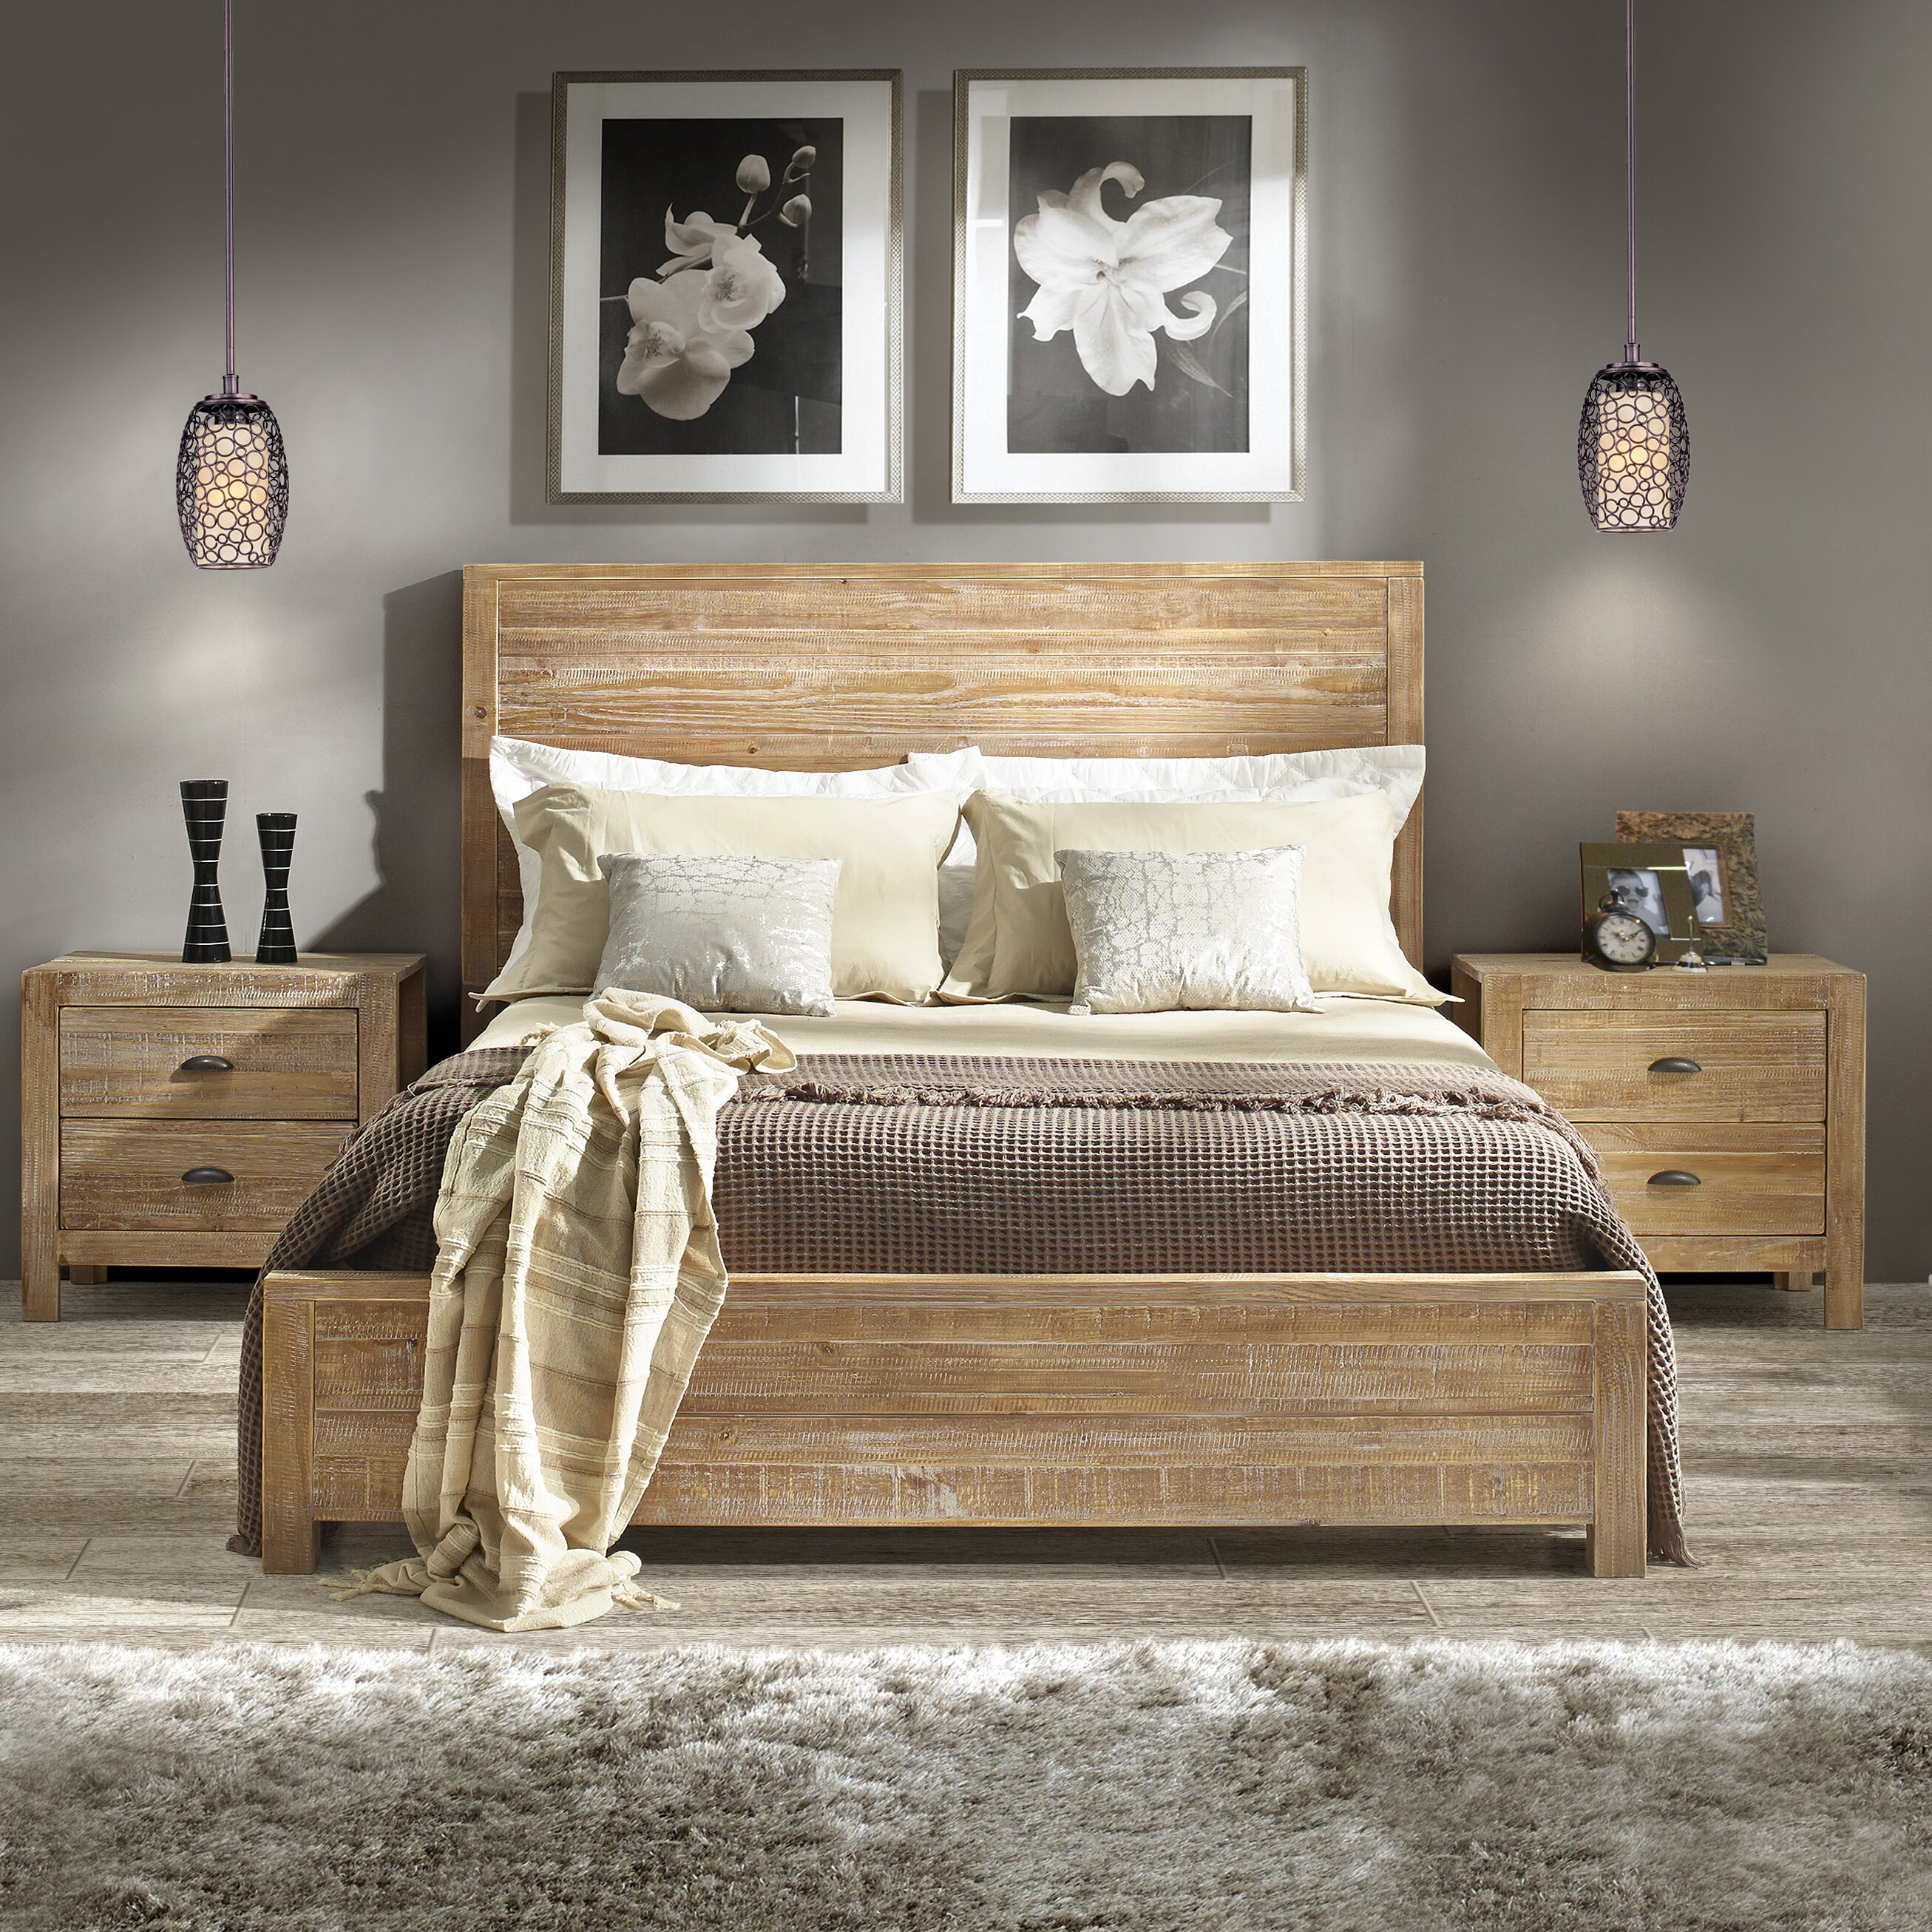 drawers images dainty frame plus ideas full bedroom wood designs bed about platform design base awesome japanese frames camas loft for with on beds including storage